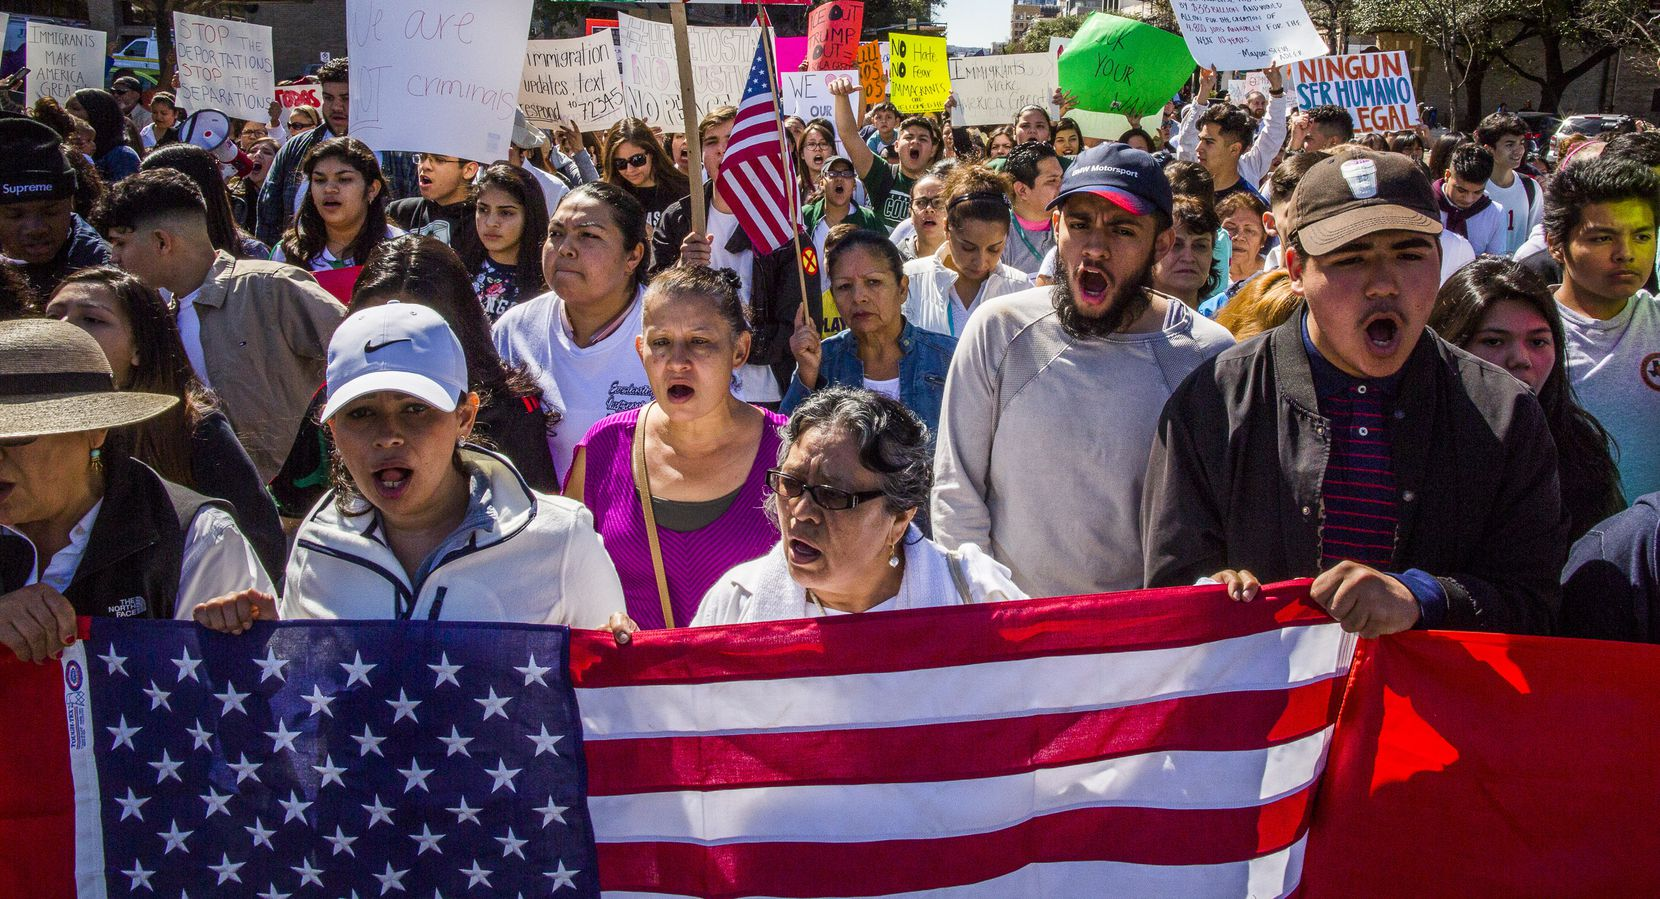 Protesters march in the streets outside the Texas State Capital on 'A Day Without Immigrants' February 16, 2017 in Austin, Texas.  The crowd, which grew to well over a thousand participants, marched from the Austin City Hall to the Texas State Capital.